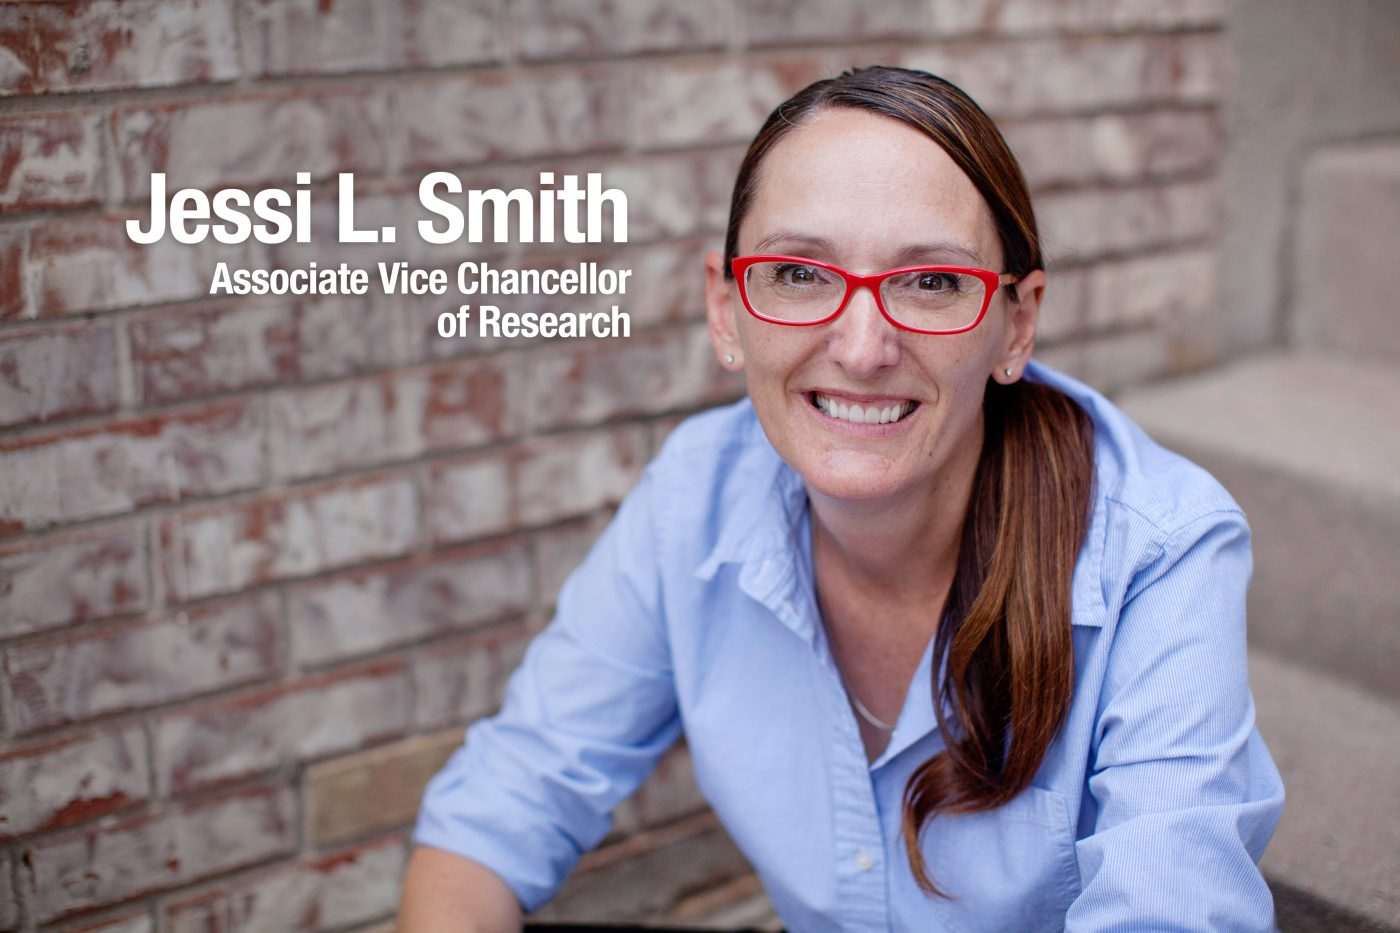 Jessi L. Smith, Associate Vice Chancellor of Research